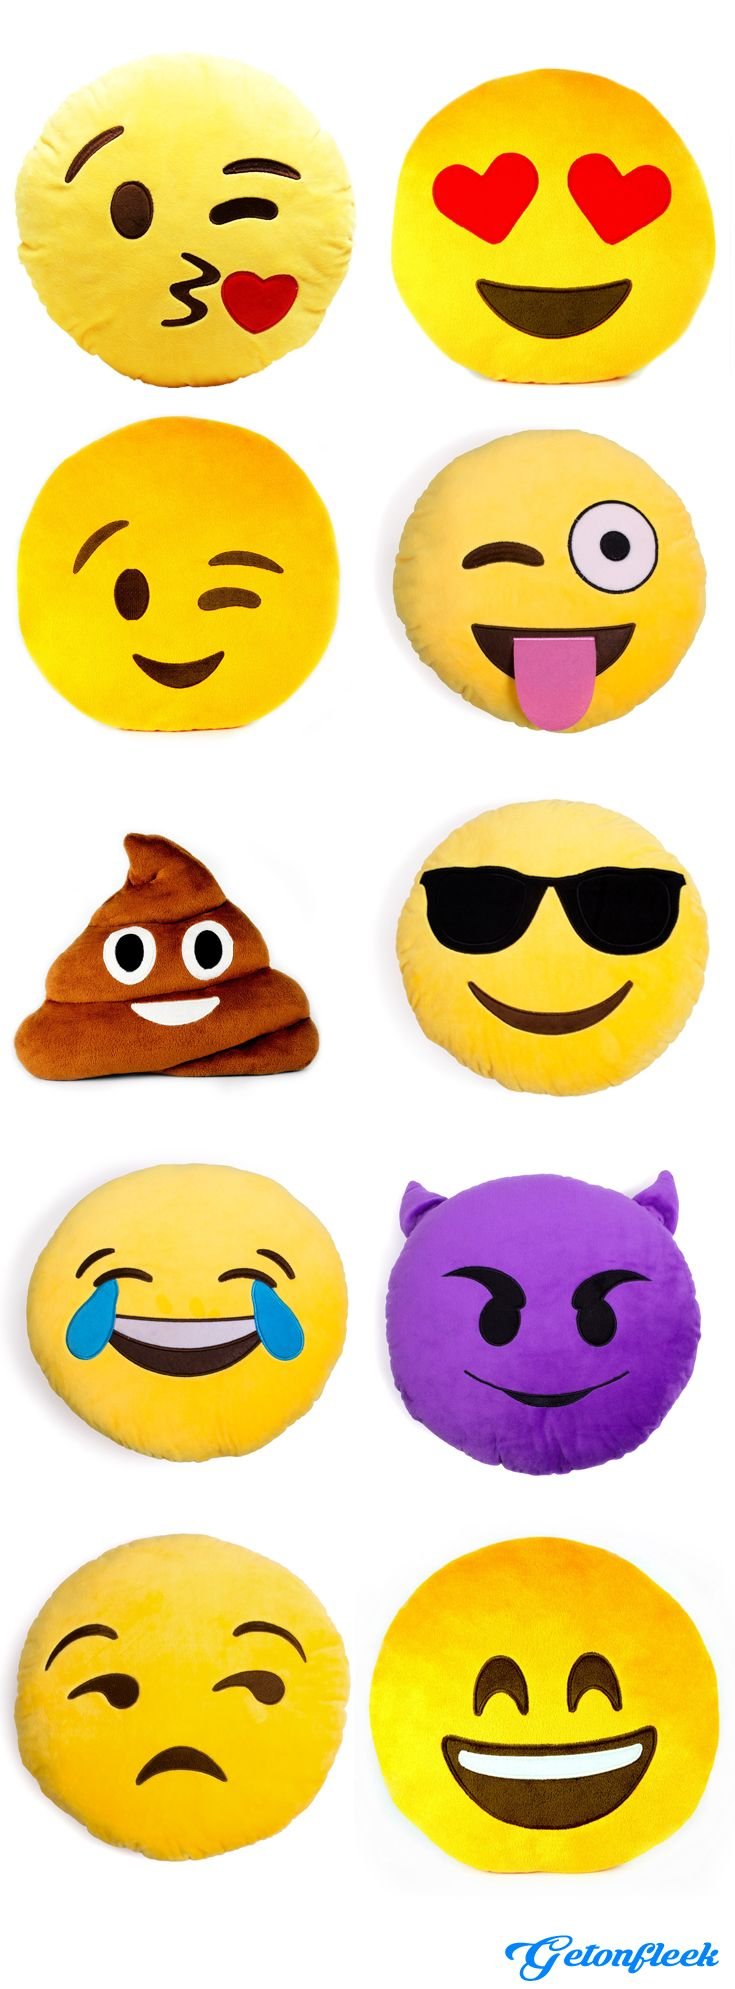 Emoji Pillows - Check out the entire collection! www.getonfleek.com